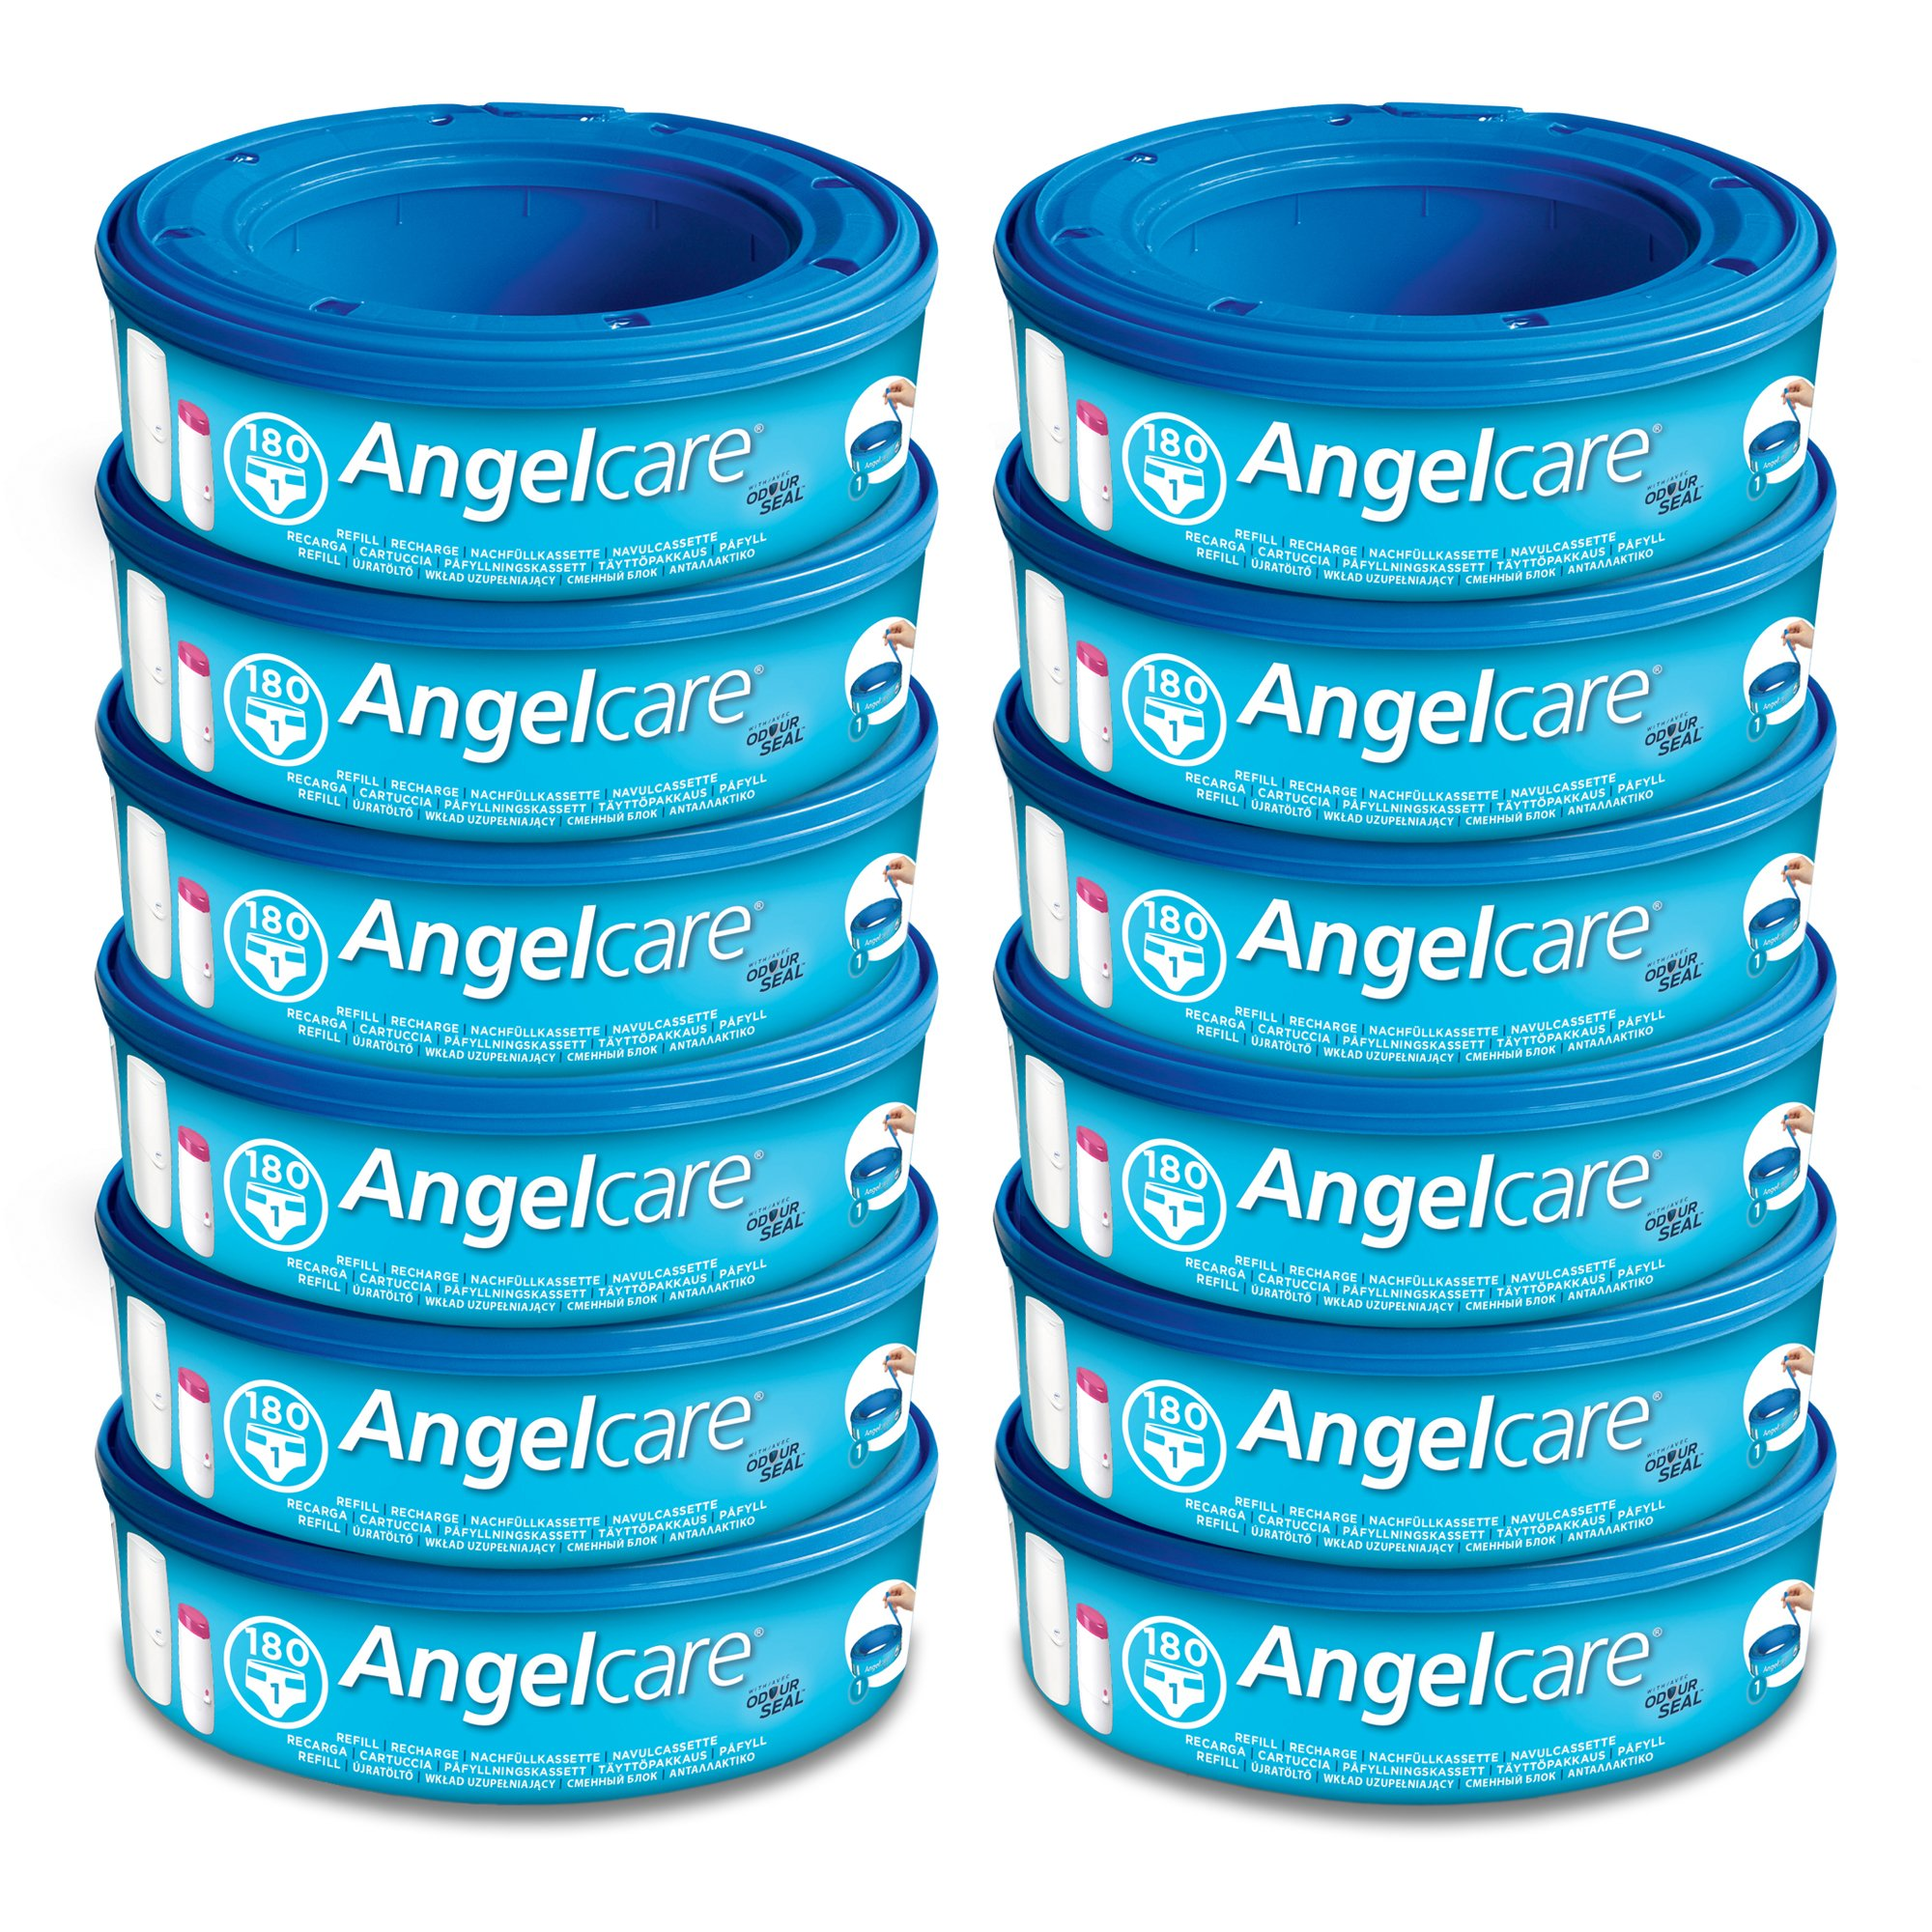 Angelcare Refill Cassettes - Pack of 12 by Angelcare (Image #1)